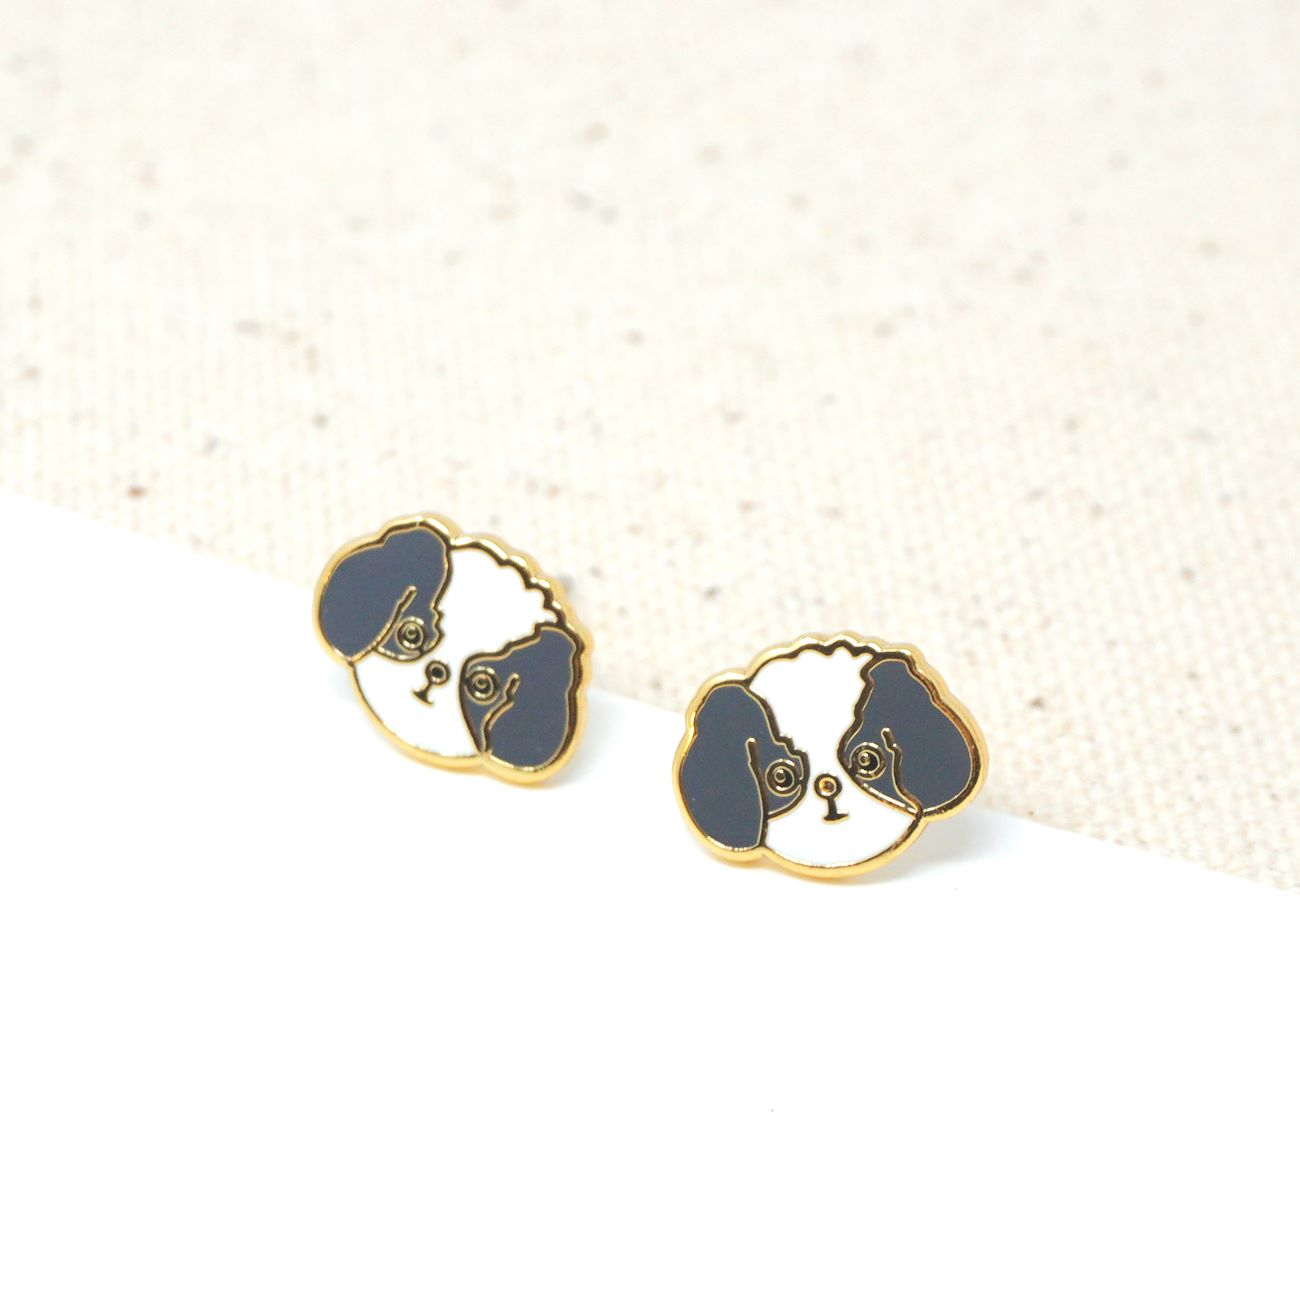 Handcrafted Gray Shih Tzu Enamel Stud Earrings | Miss Modi